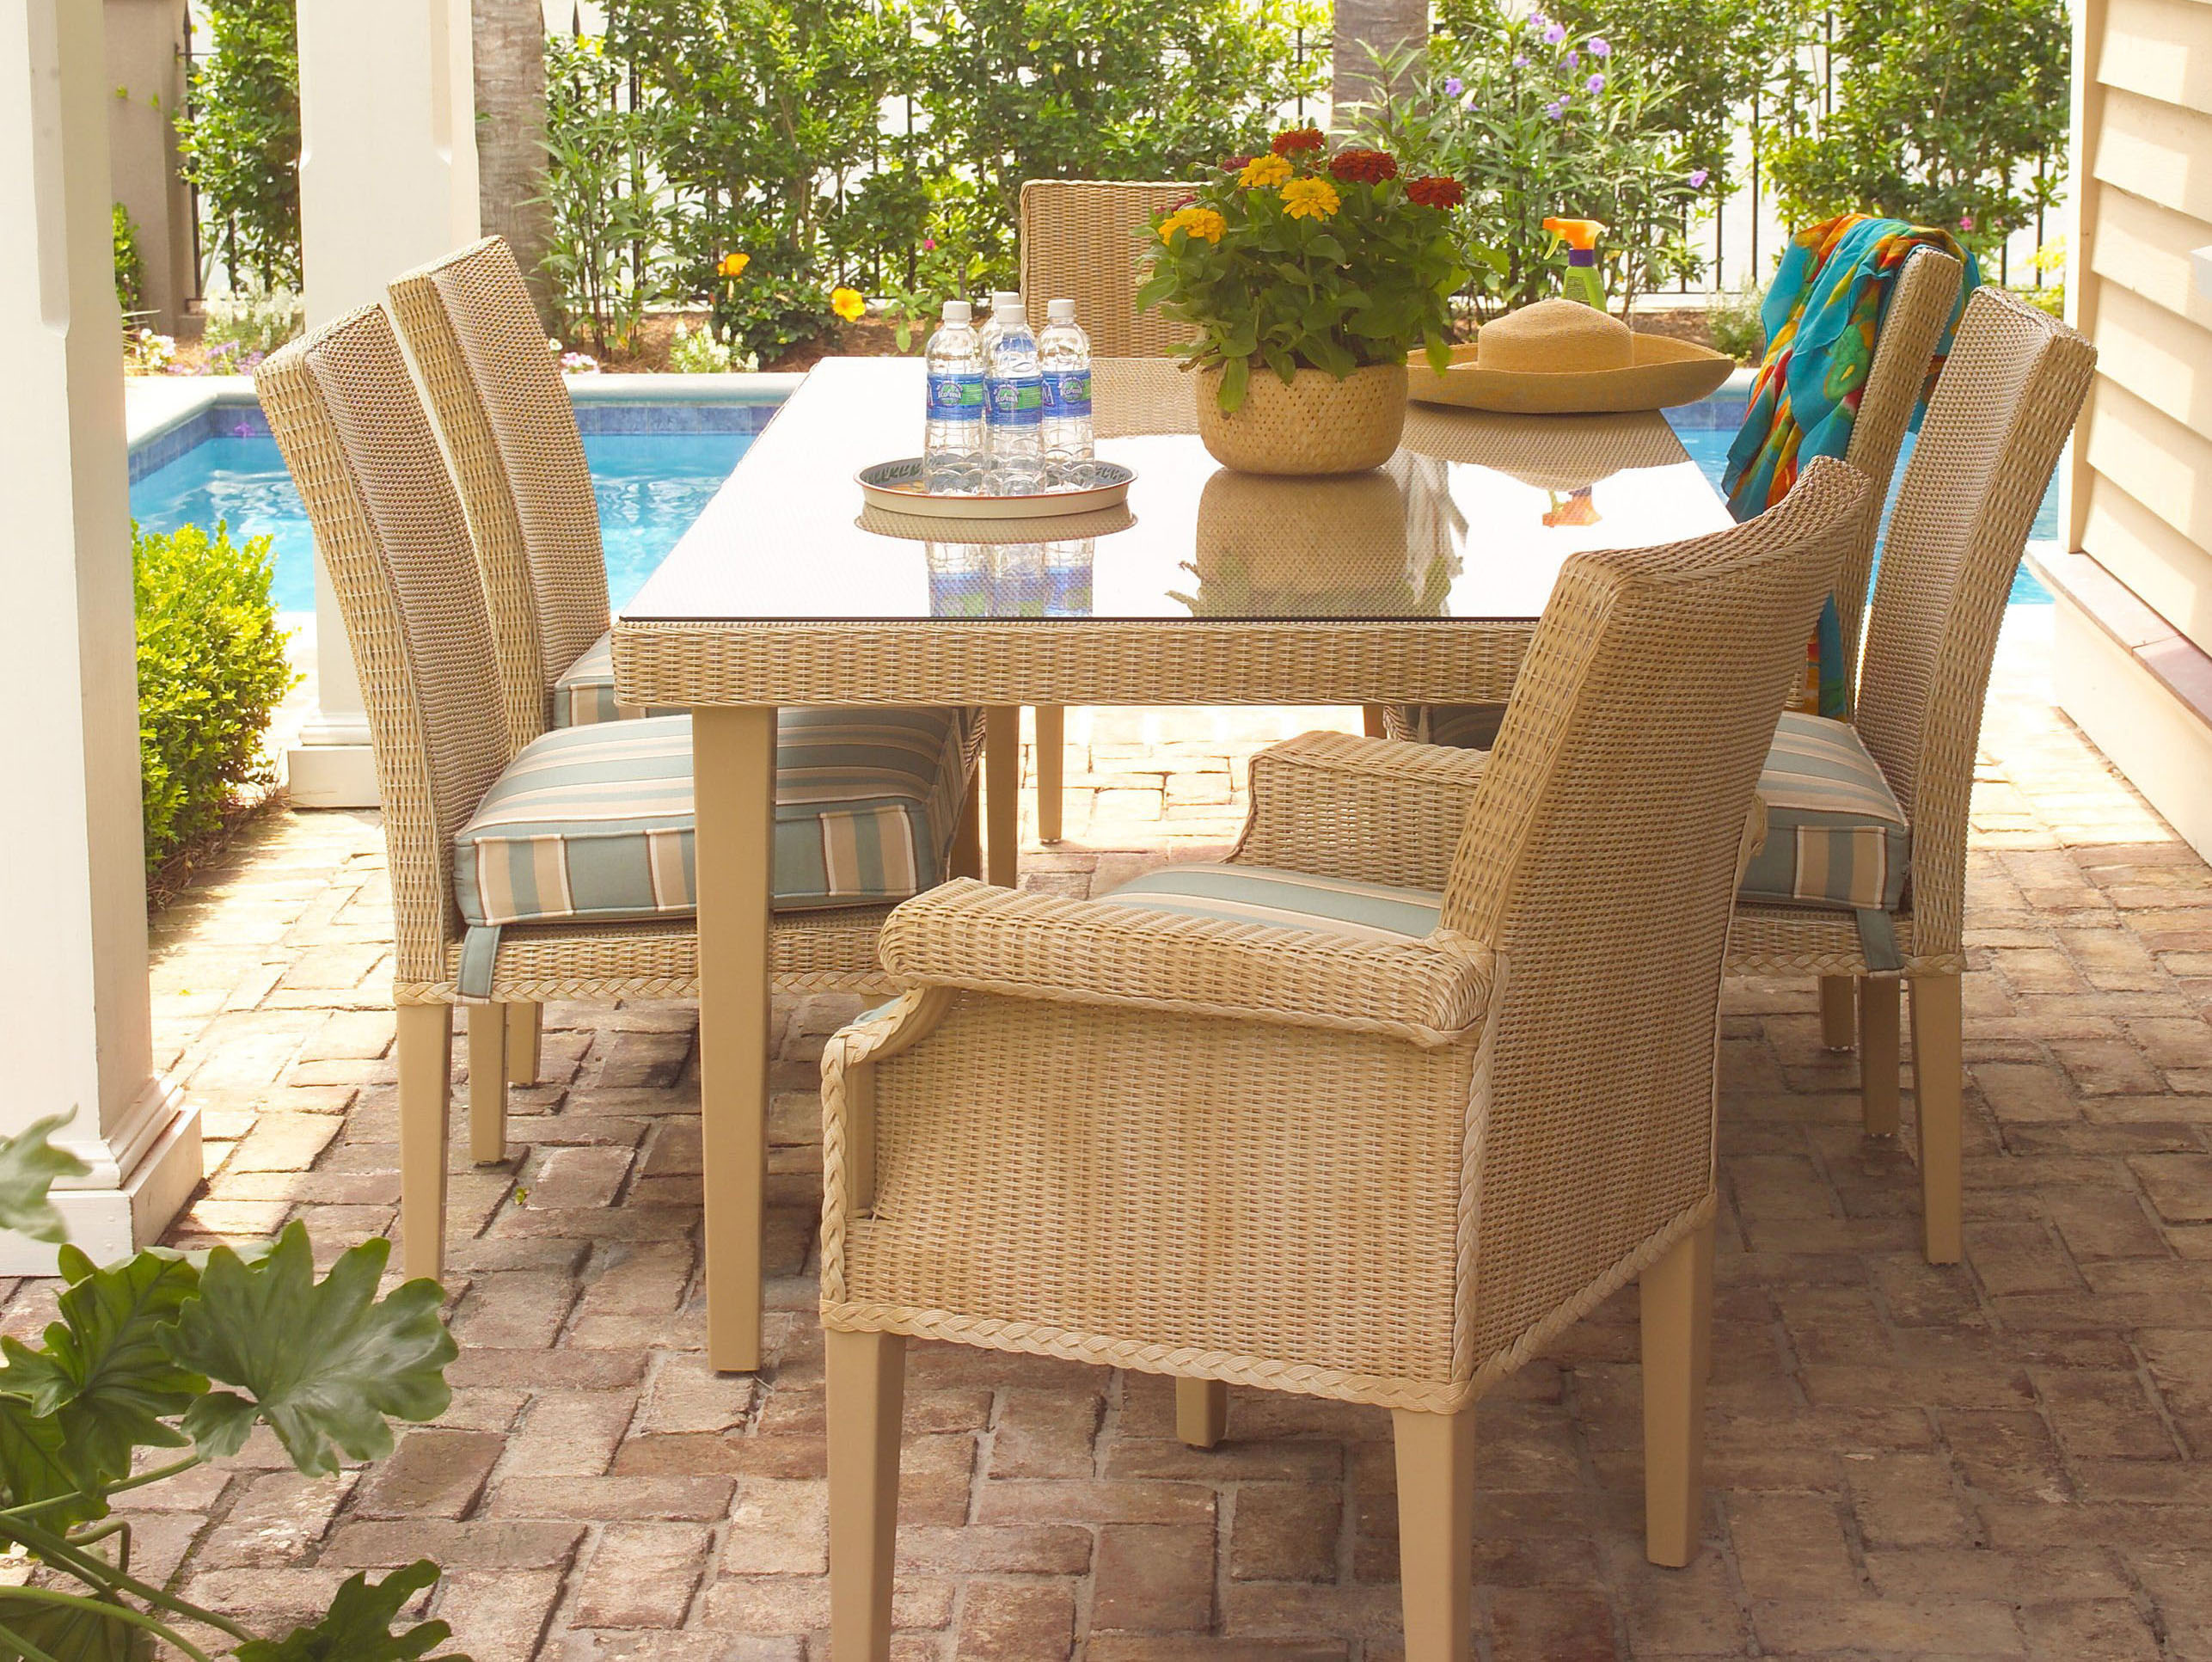 Premiere Adirondack Chairs Promotes Lloyd Flanders Wicker Furniture